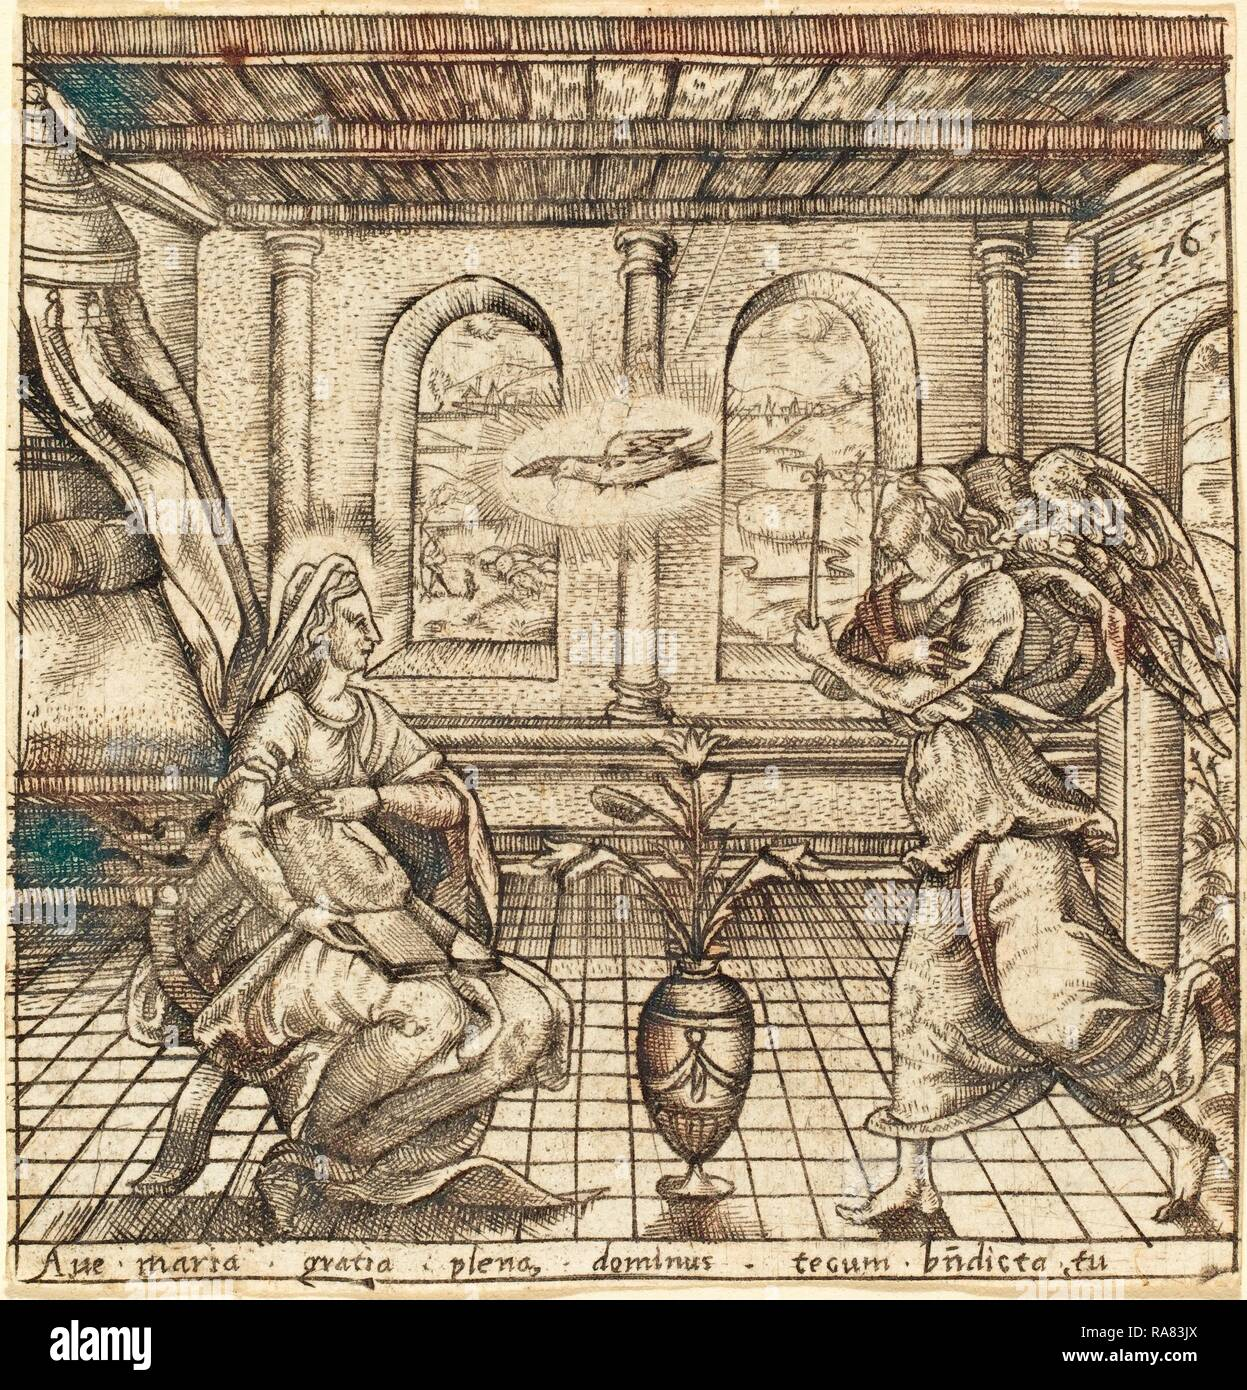 Léonard Gaultier (French, 1561 - 1641), The Annunciation, probably c. 1576-1580, engraving. Reimagined Stock Photo